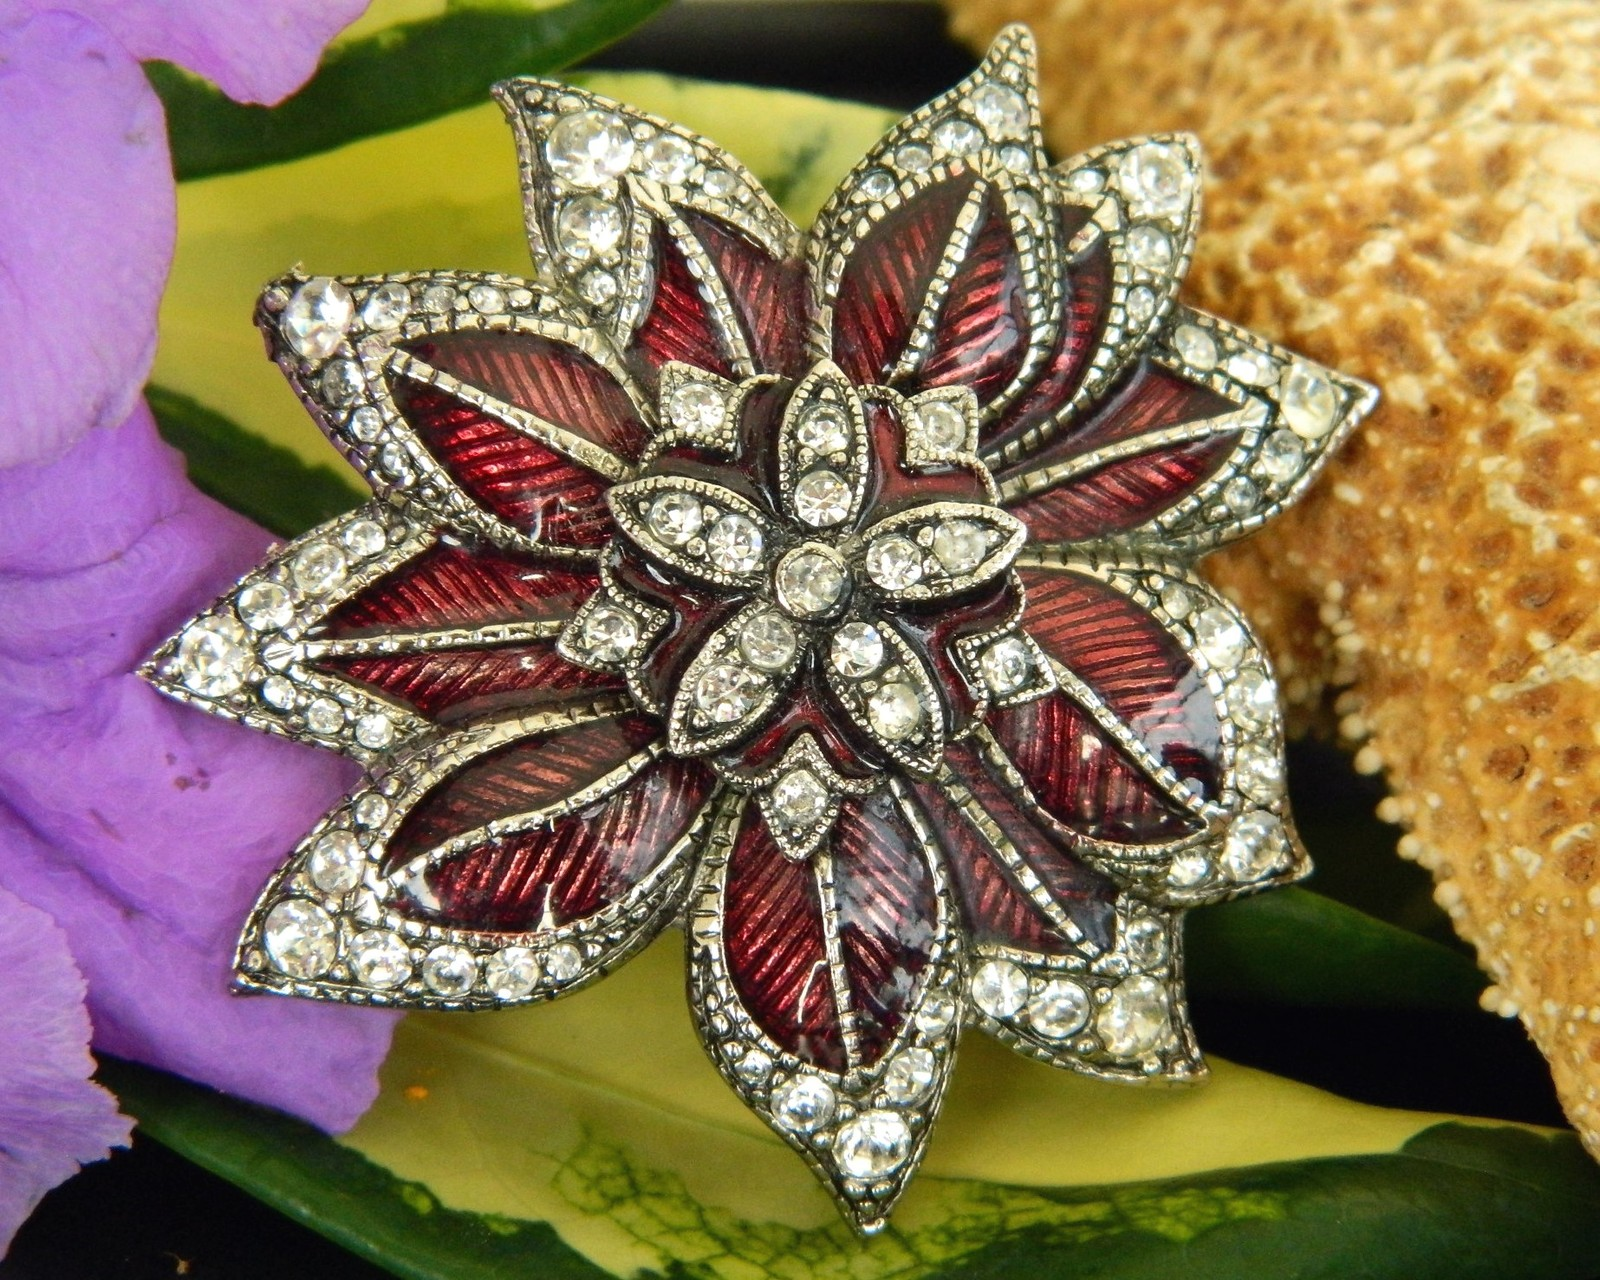 f4c9832d3e6 Vintage Monet Poinsettia Flower Brooch Pin and 38 similar items